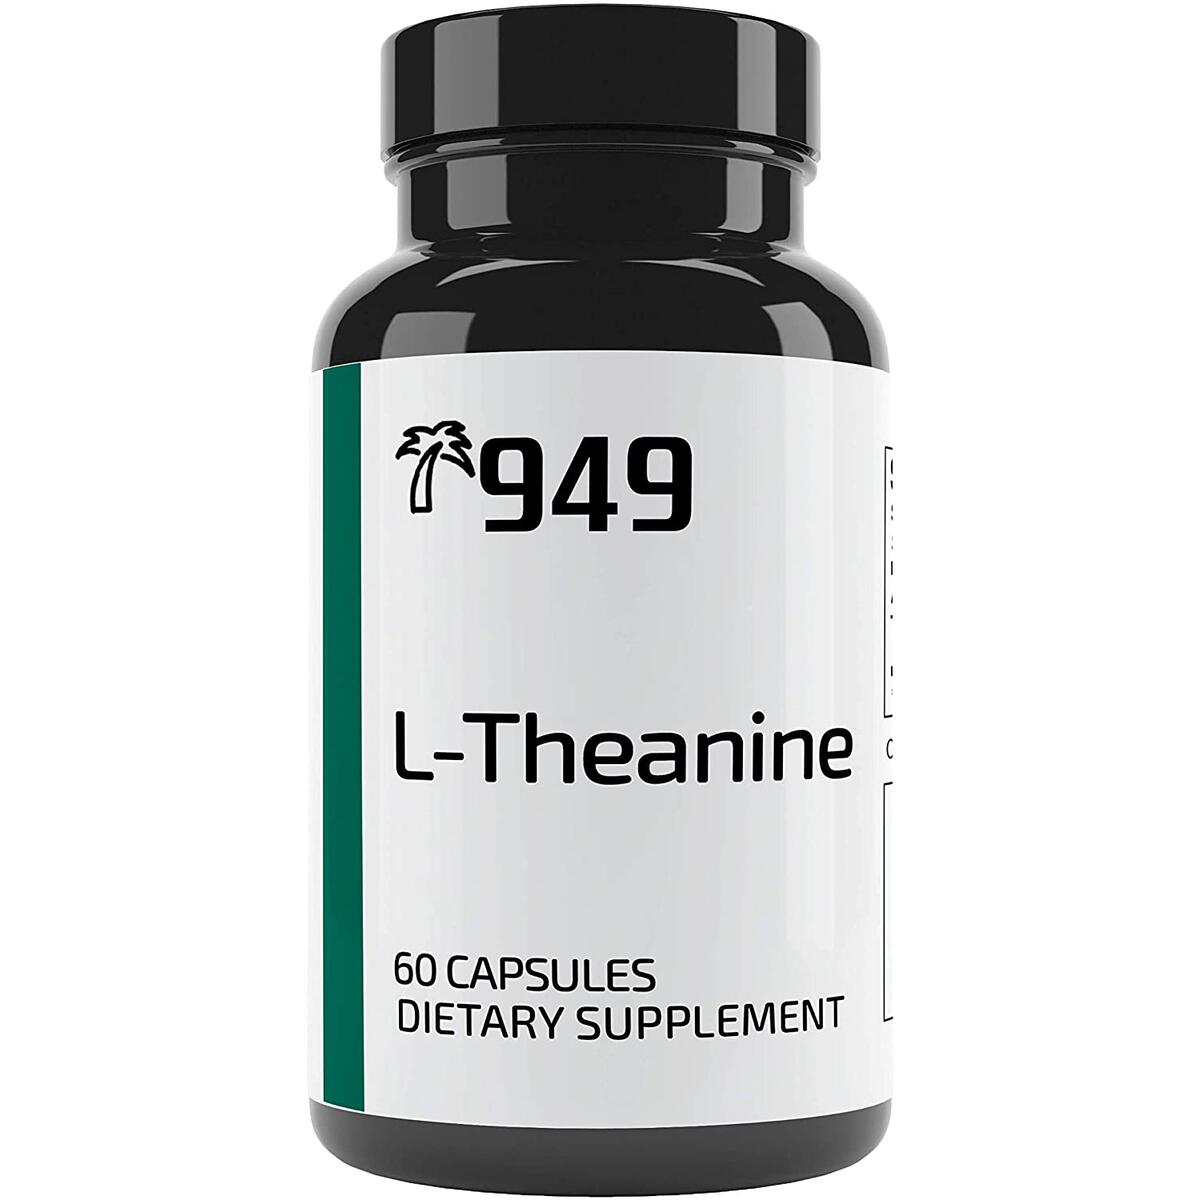 L-Theanine, Under 10 Dollars, 60 Capsules, Relaxation, Stress Relief, No Additives or Filler, Lab-Tested to Ensure Purity, Made in The USA, Satisfaction 100% Guaranteed, 949*